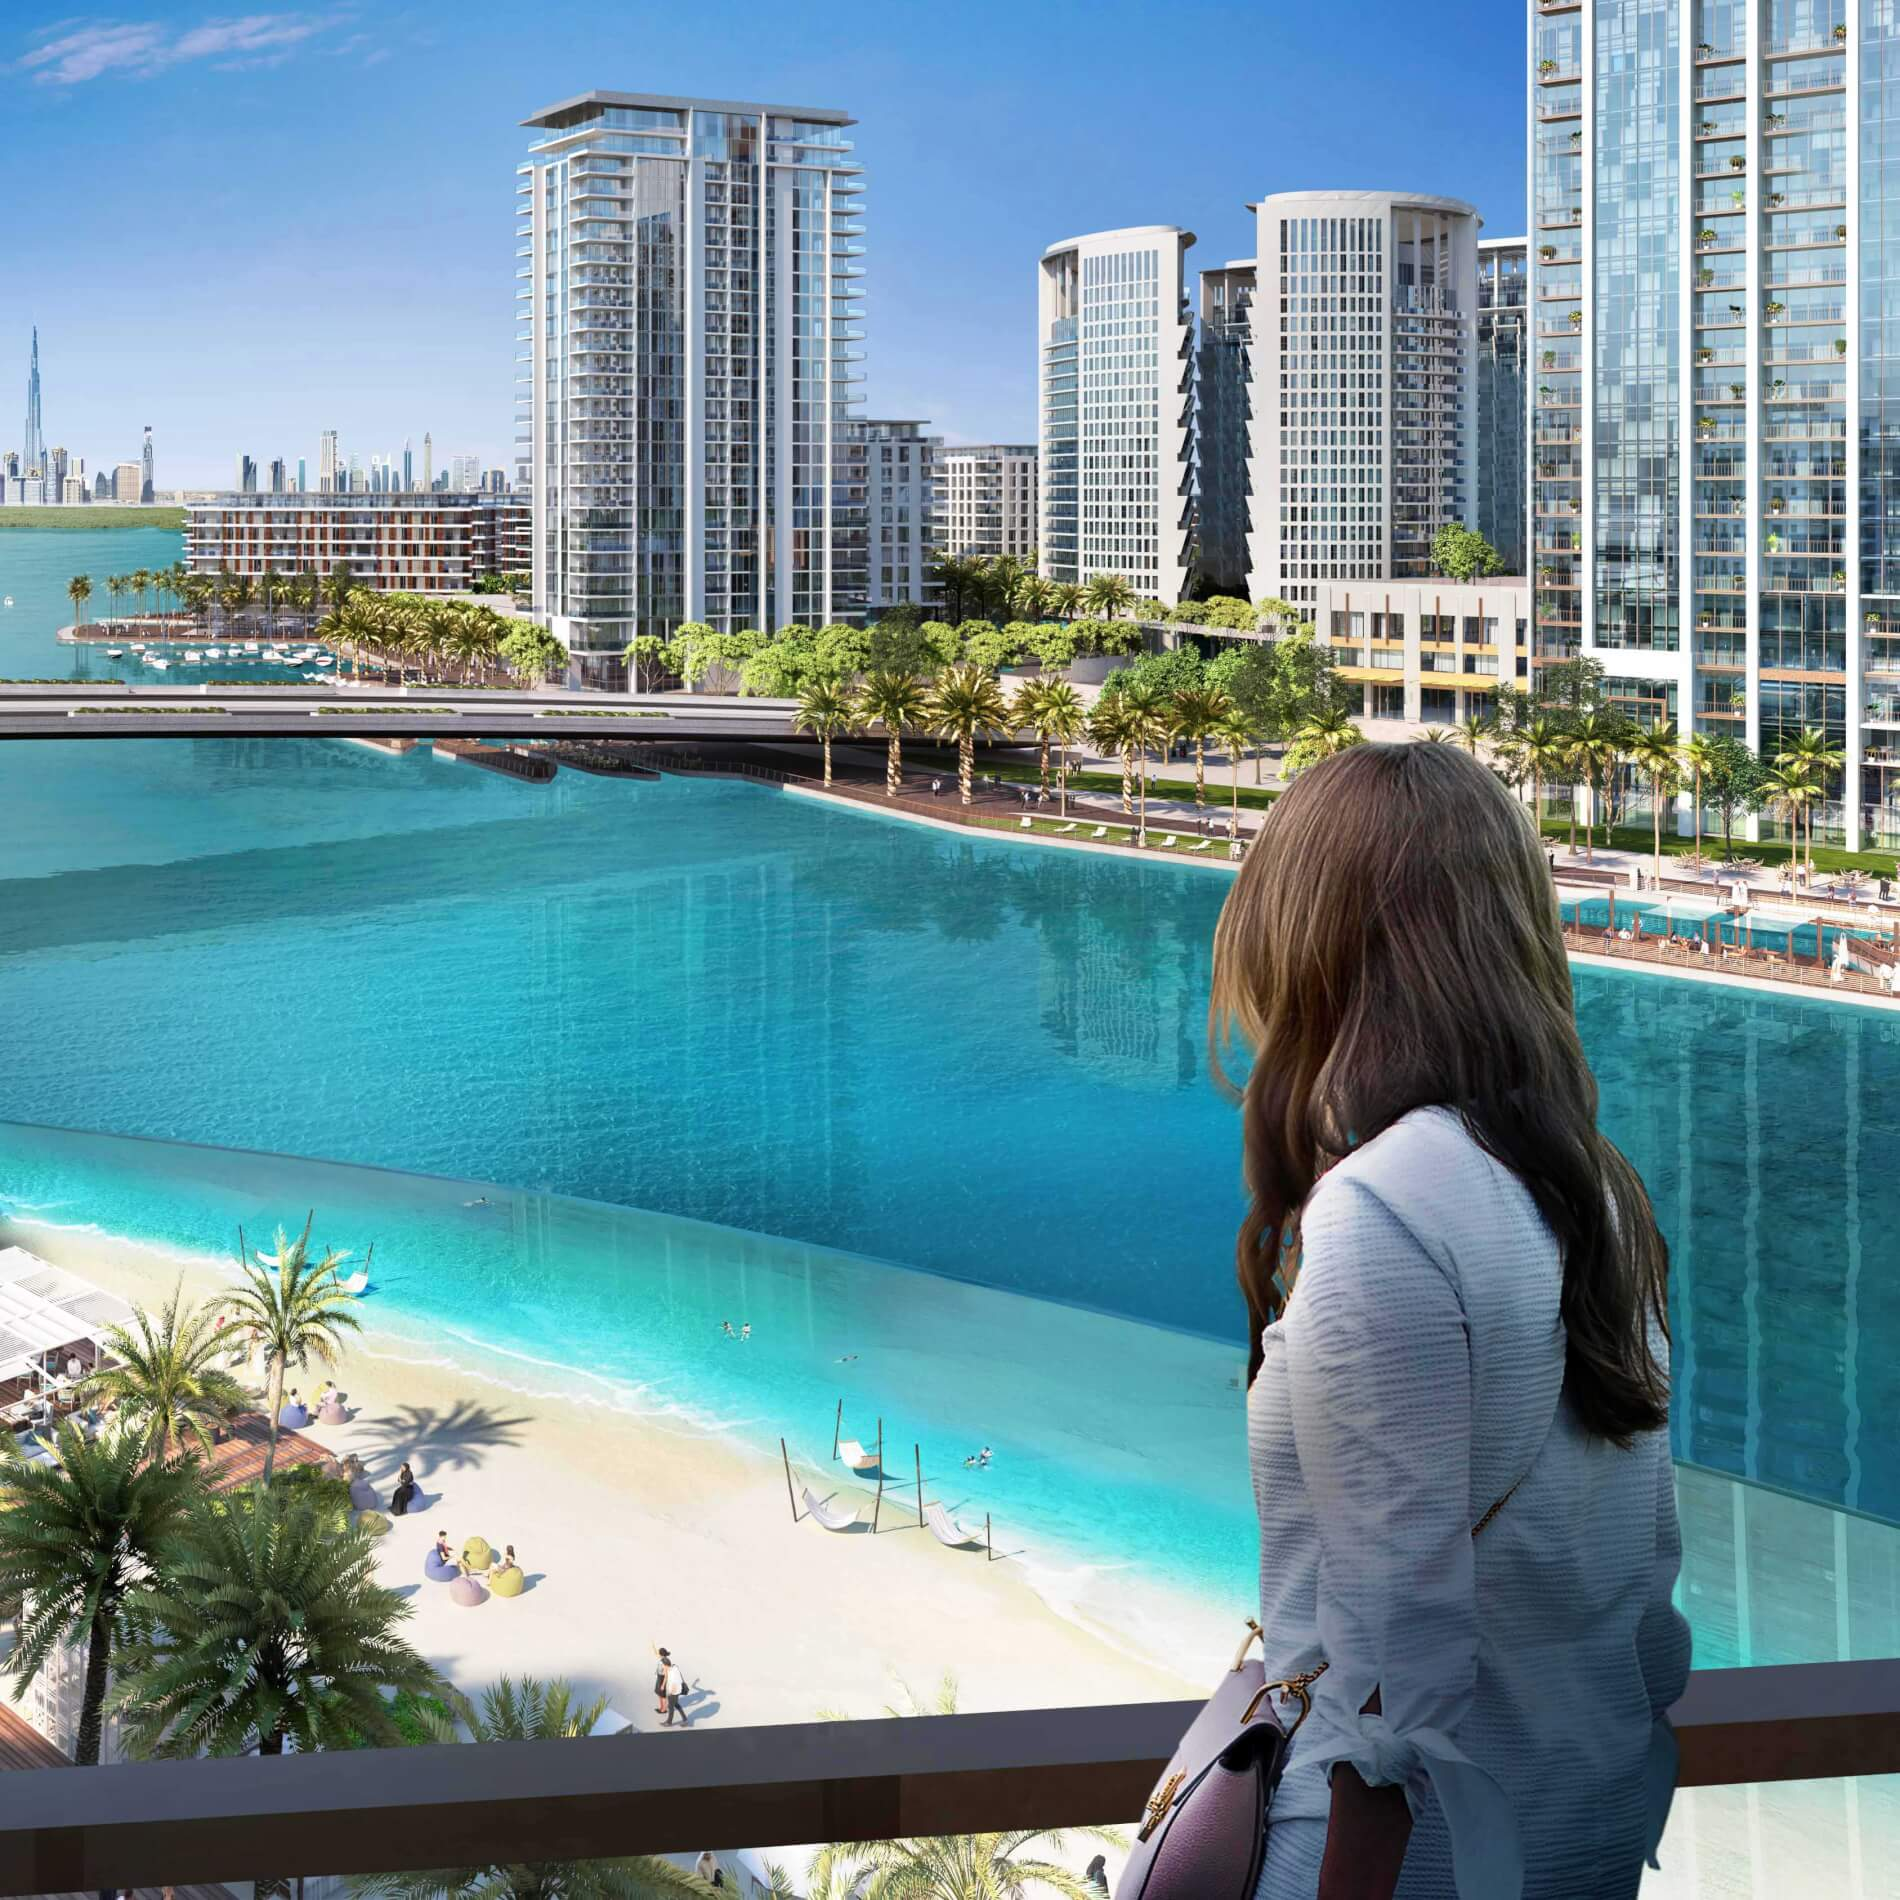 Sunset Cluster Pushes Ahead at Emaar's Creek Beach District